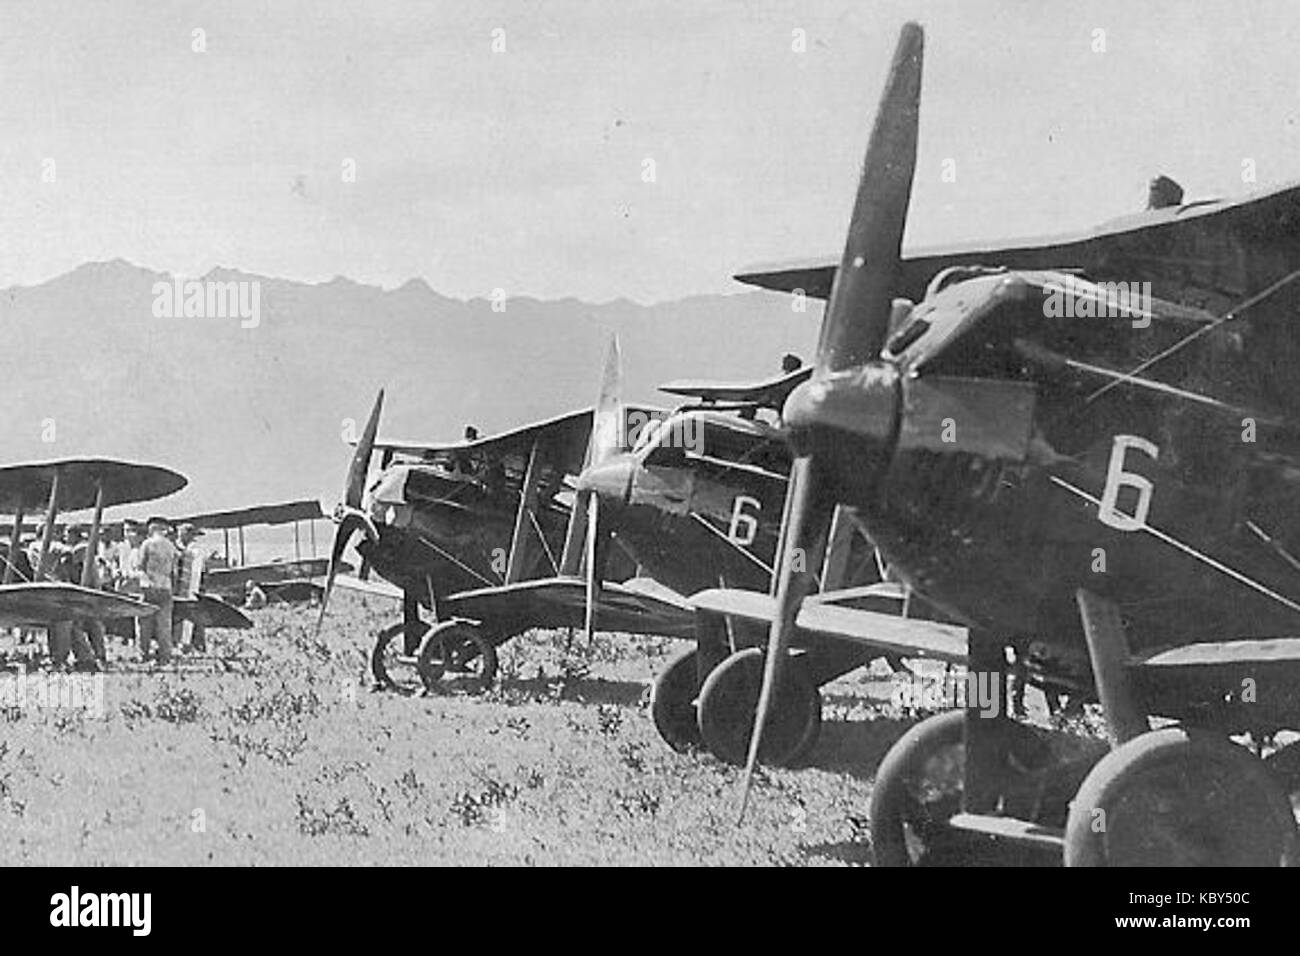 6th Aero Squadron JN 6s - Stock Image